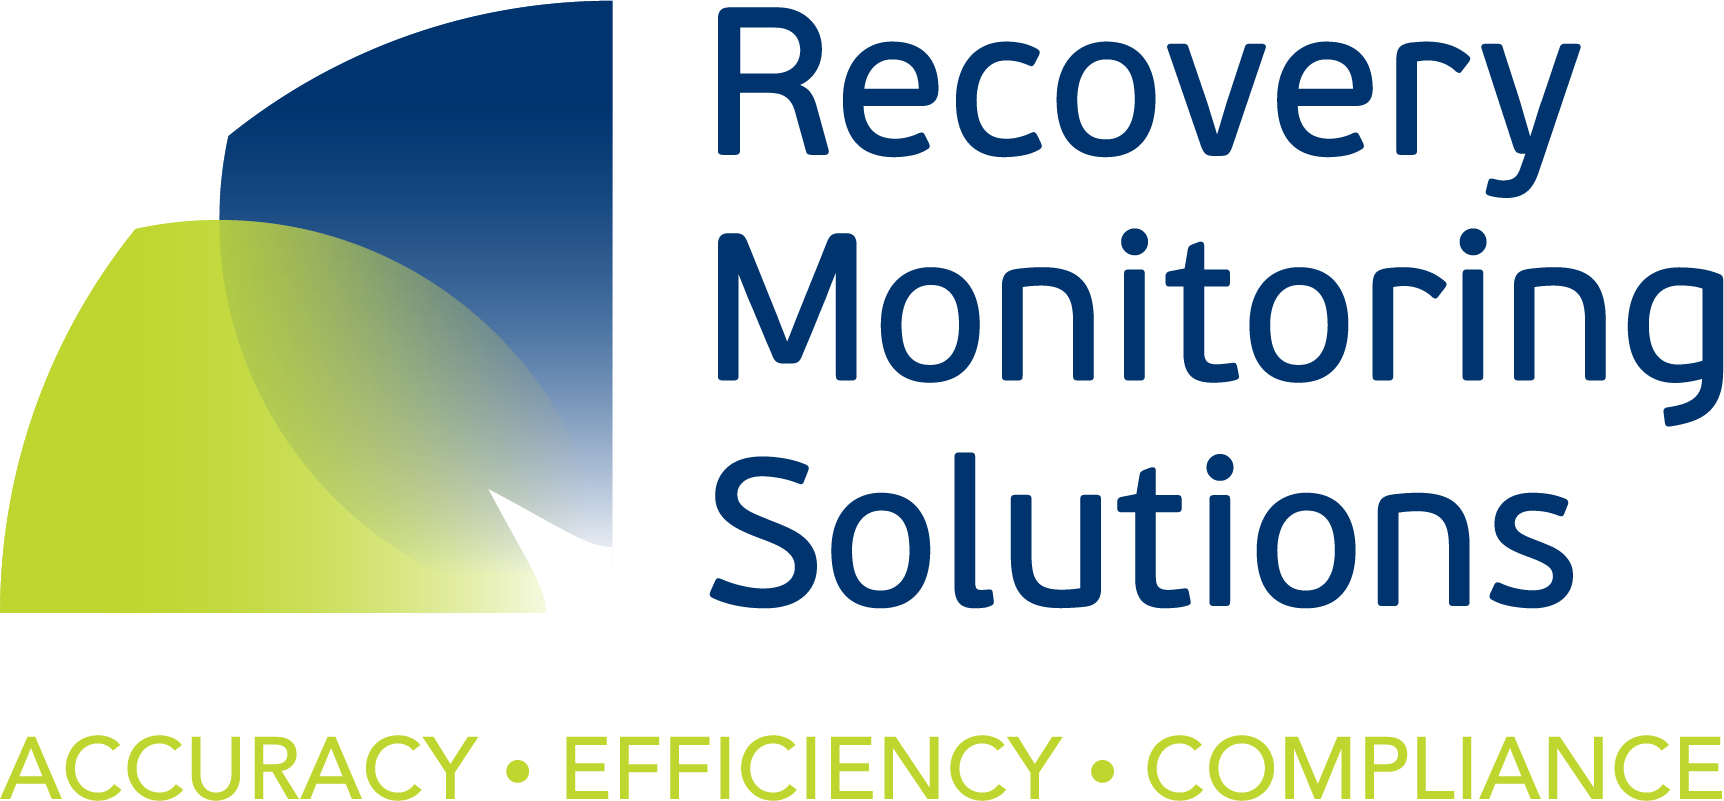 Recovery Monitoring Solutions: Accuracy, Efficiency, Compliance